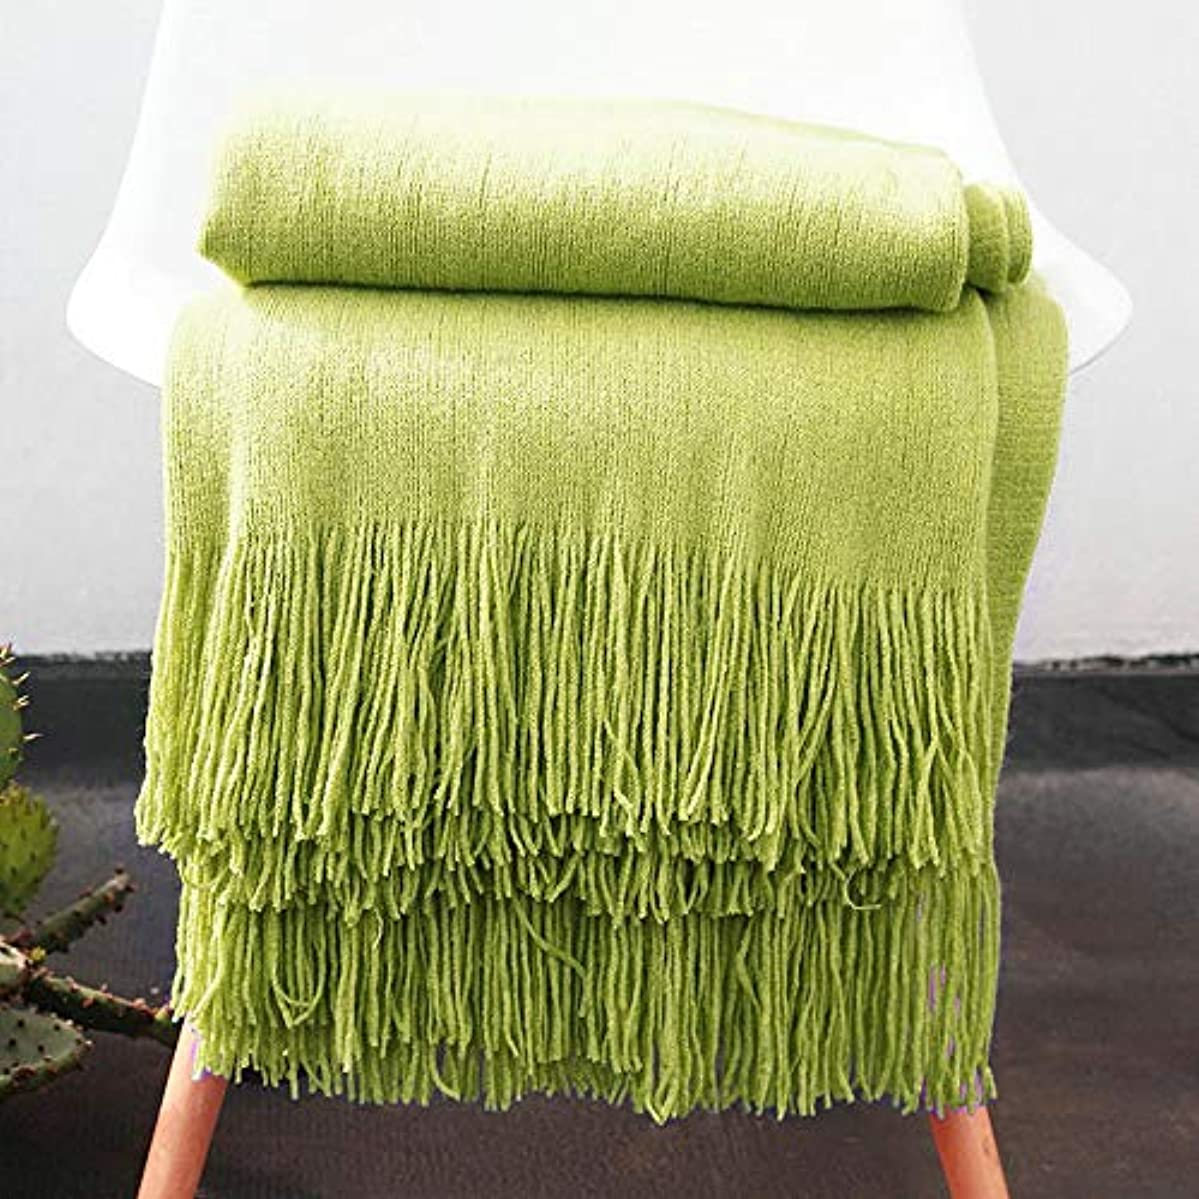 florance jones Soft Throw Blanket Warm Knit Textured Solid for Bed Sofa Couch Washable 50 x 60 | Model THRW - 1233 |